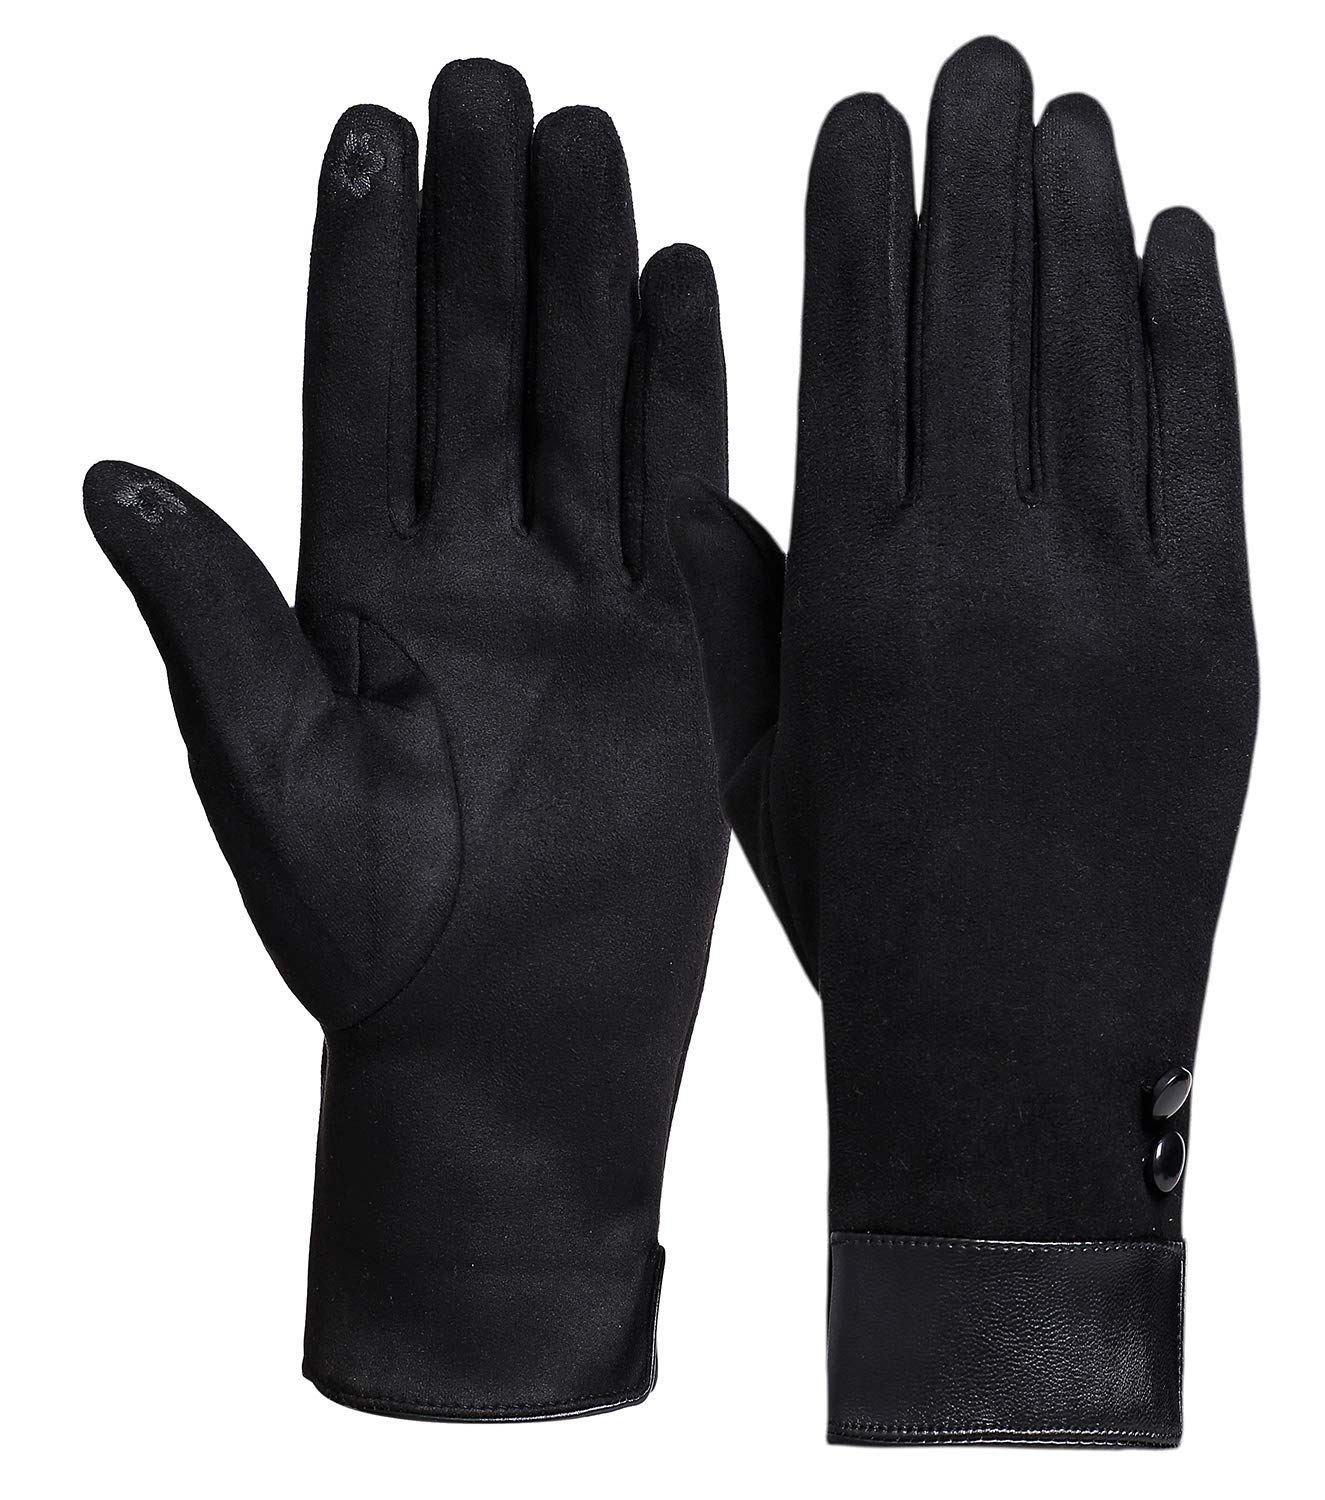 Womens Winter Warm Gloves Touch Screen Black Cold Weather Fleece Lining Gloves (091ZZ black gloves) W47346RWZJ16H